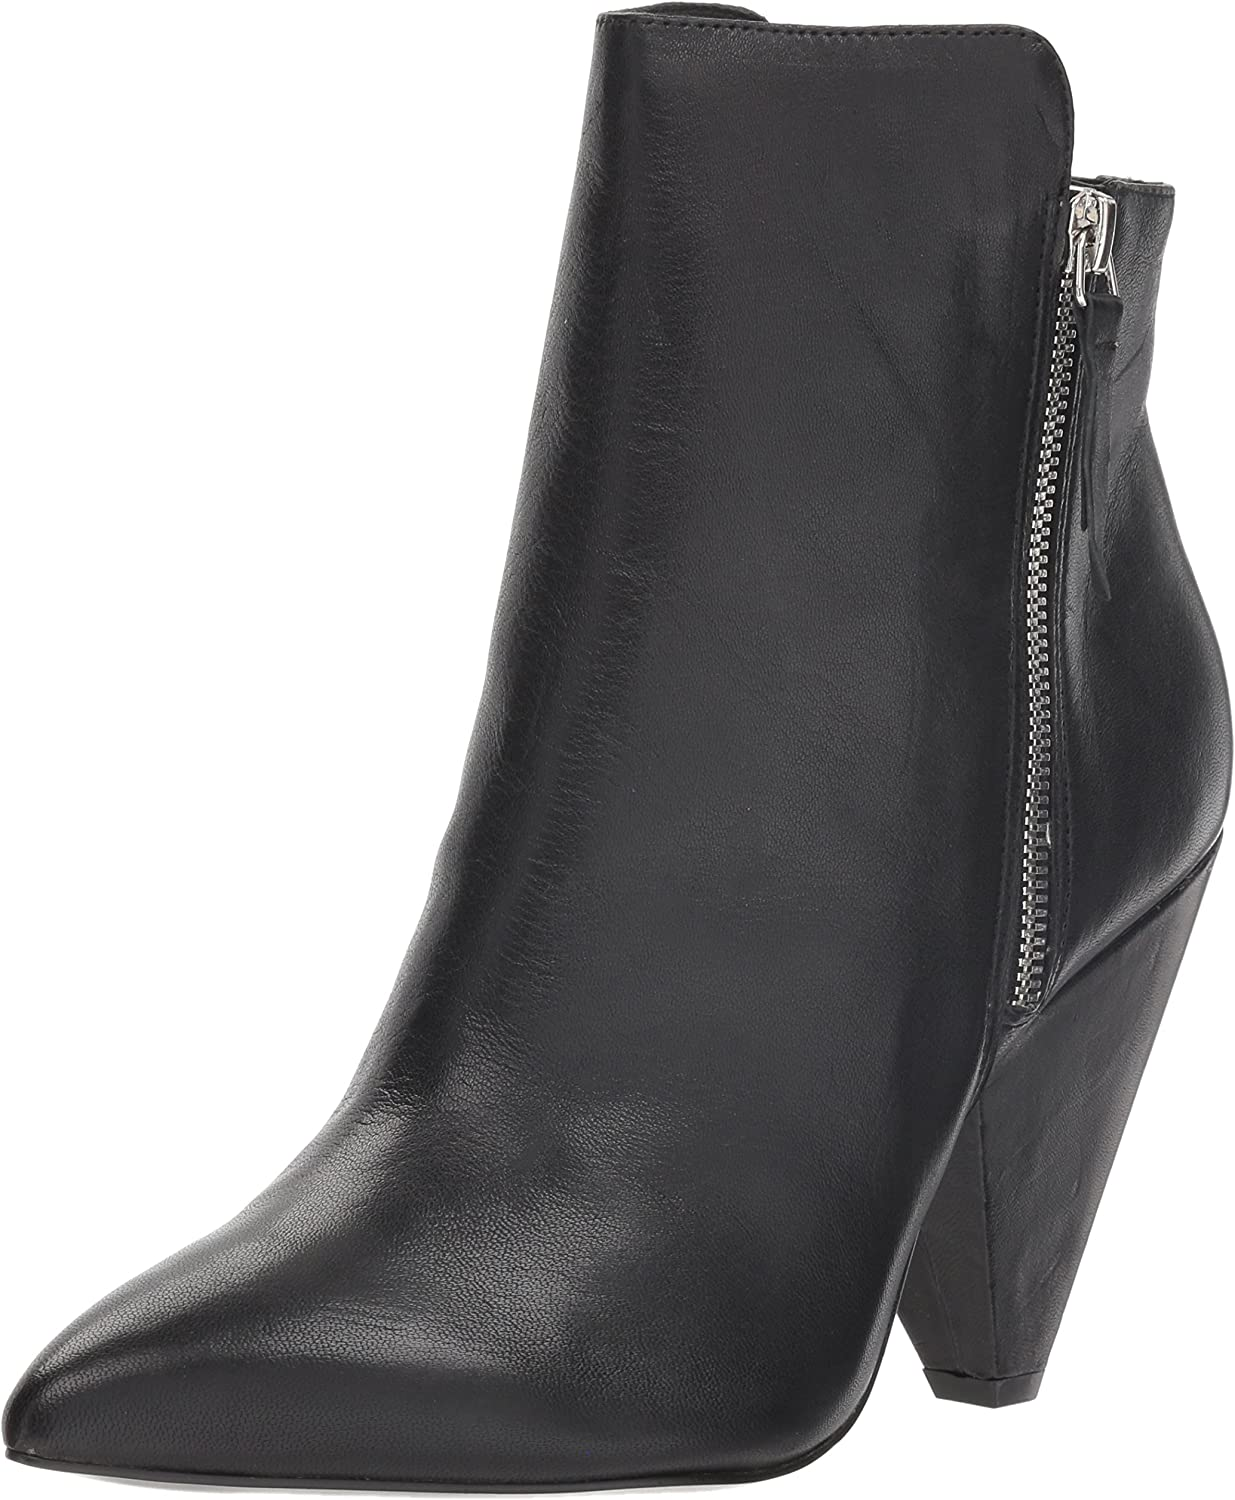 Kenneth Cole Damen Galway Zip Stiefeletten  | Viele Stile